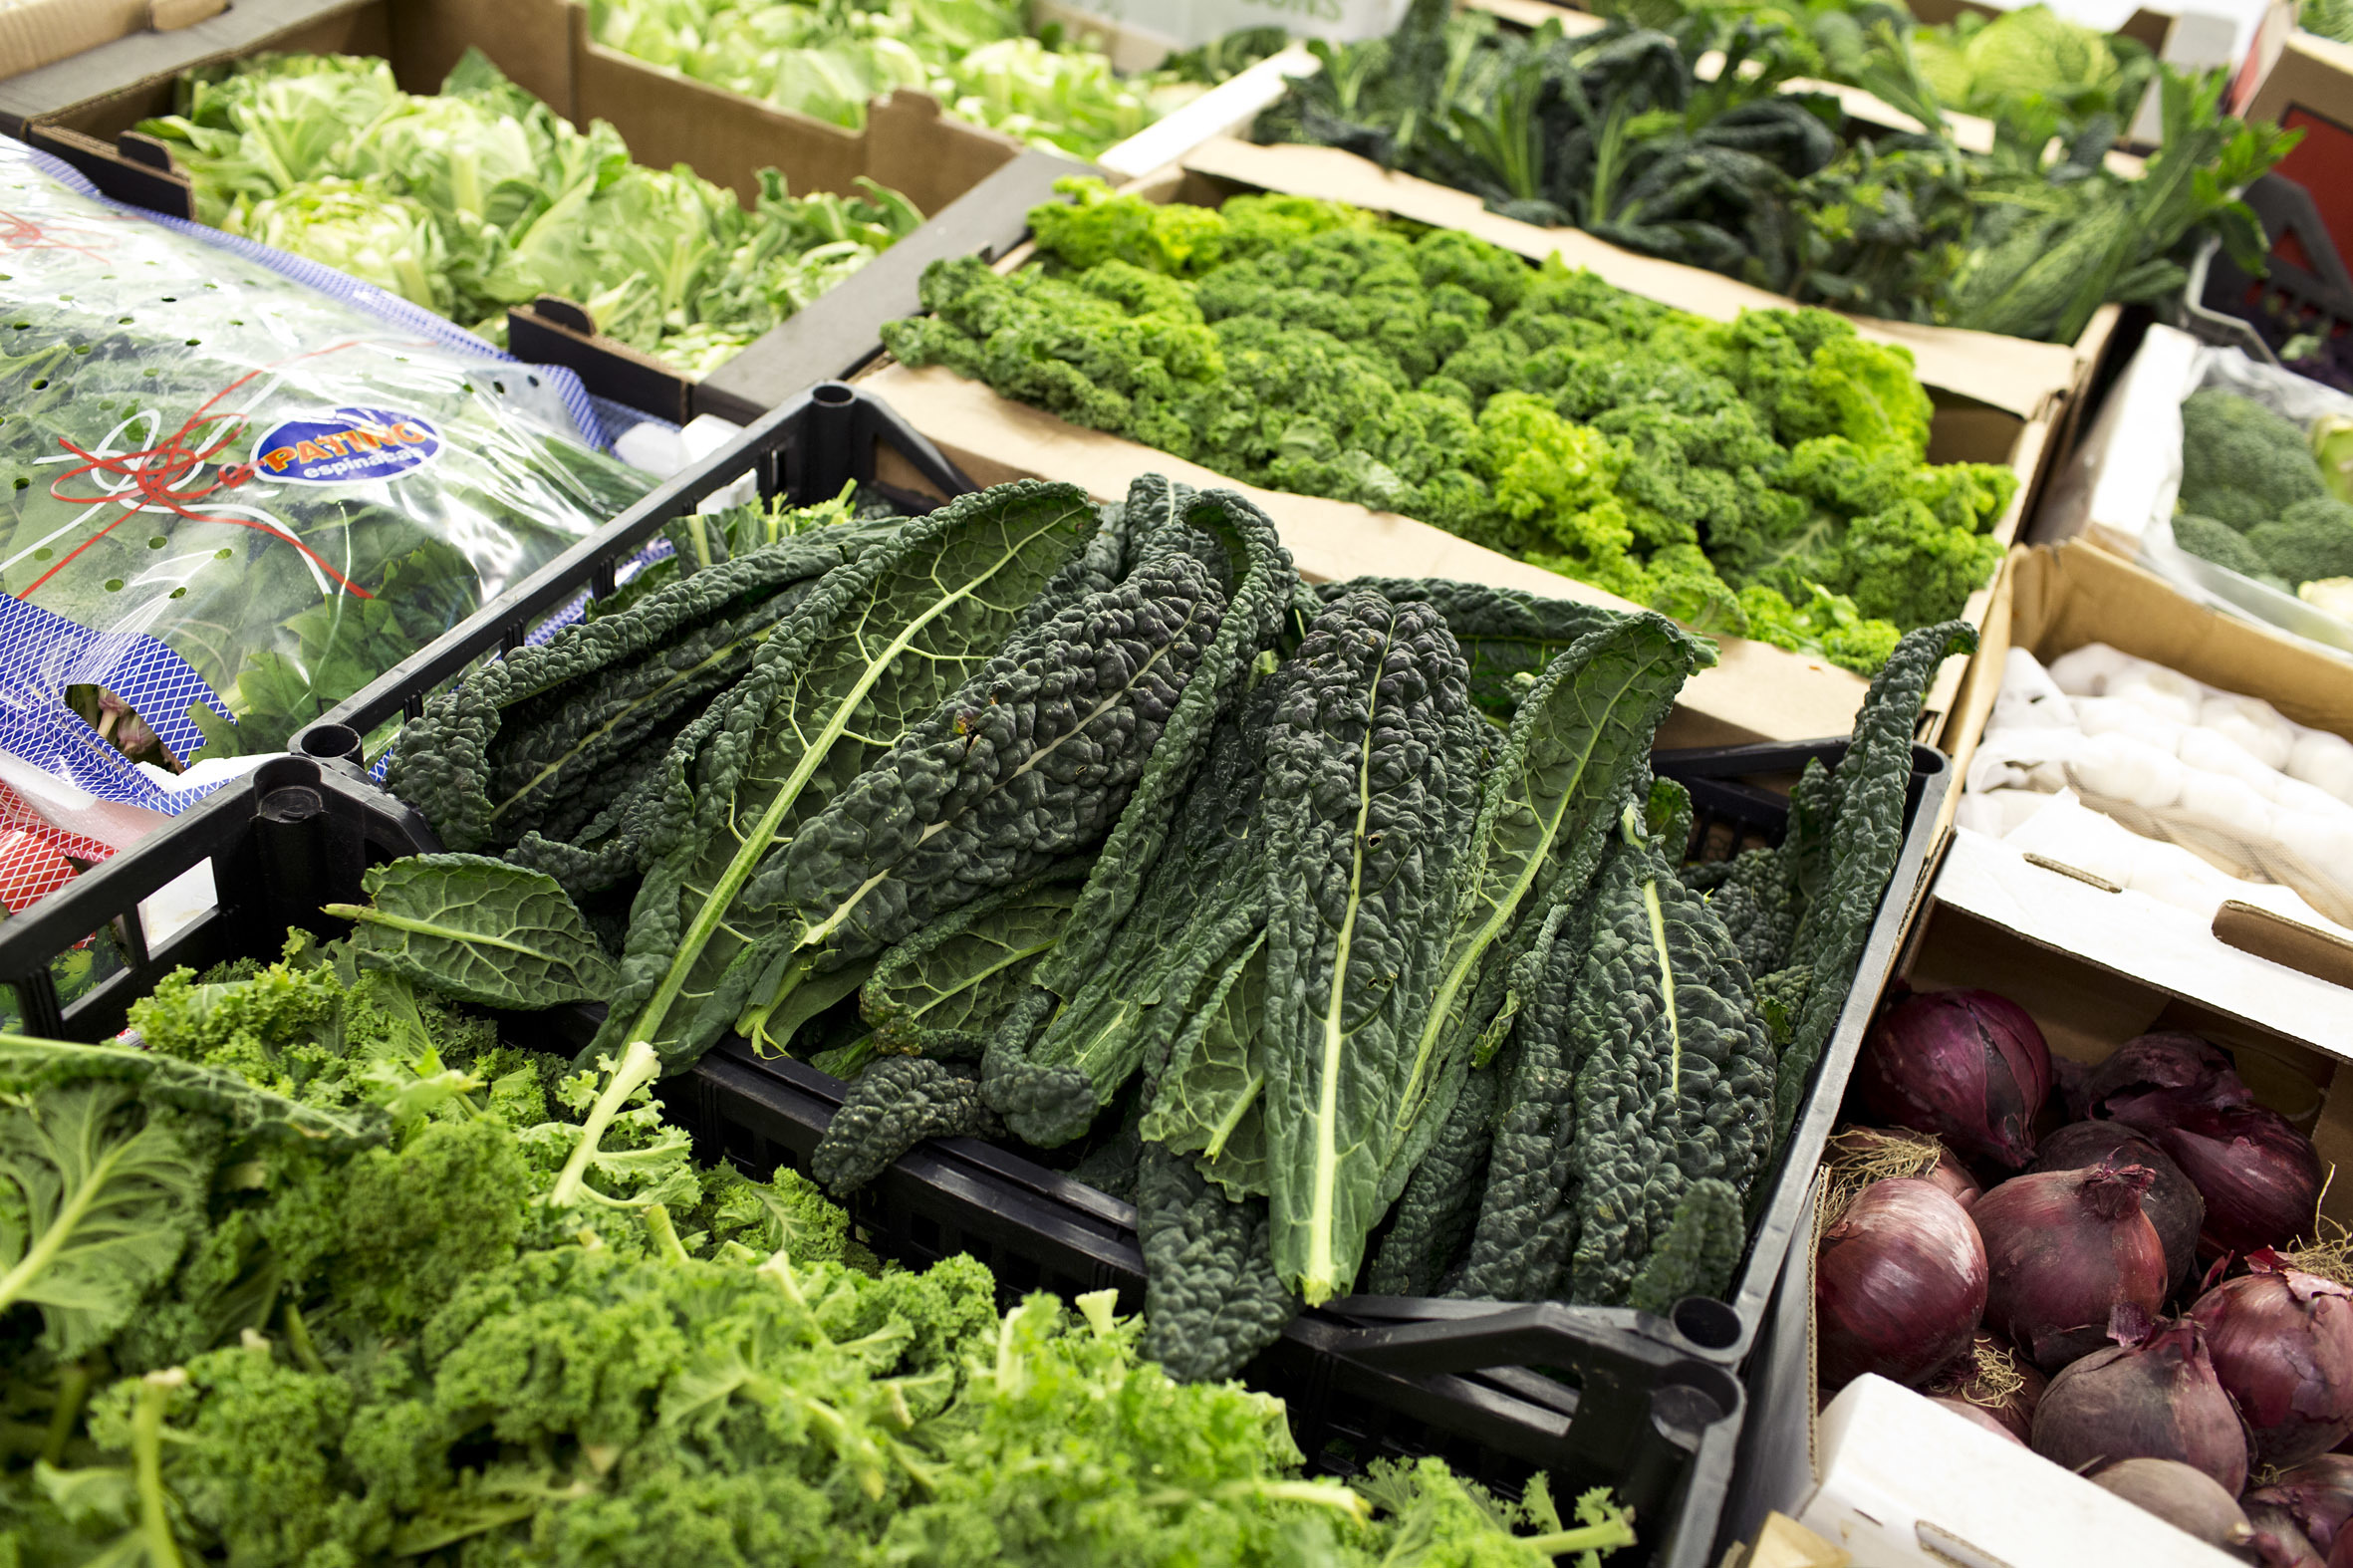 fruit-and-vegetable-market-report-march-2014-kale.jpg?mtime=20170922112634#asset:11327